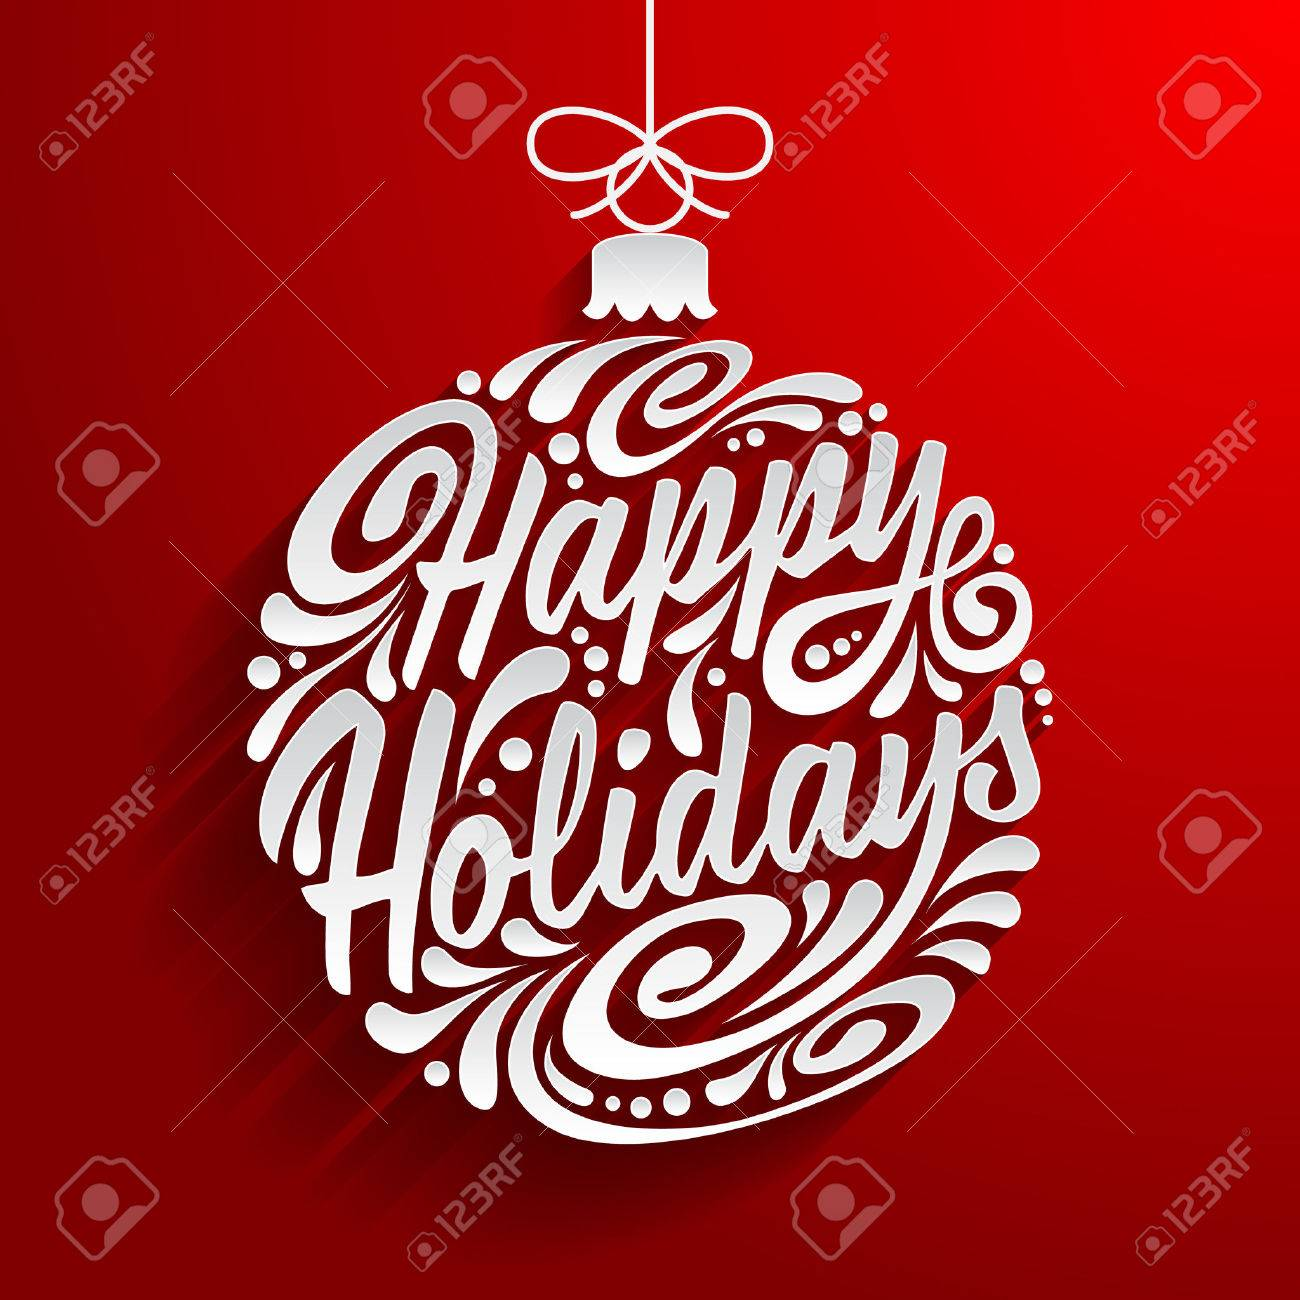 Happy holidays card stock photos royalty free business images holidays greeting card with abstract doodle christmas ball vector eps10 illustration happy holidays kristyandbryce Image collections